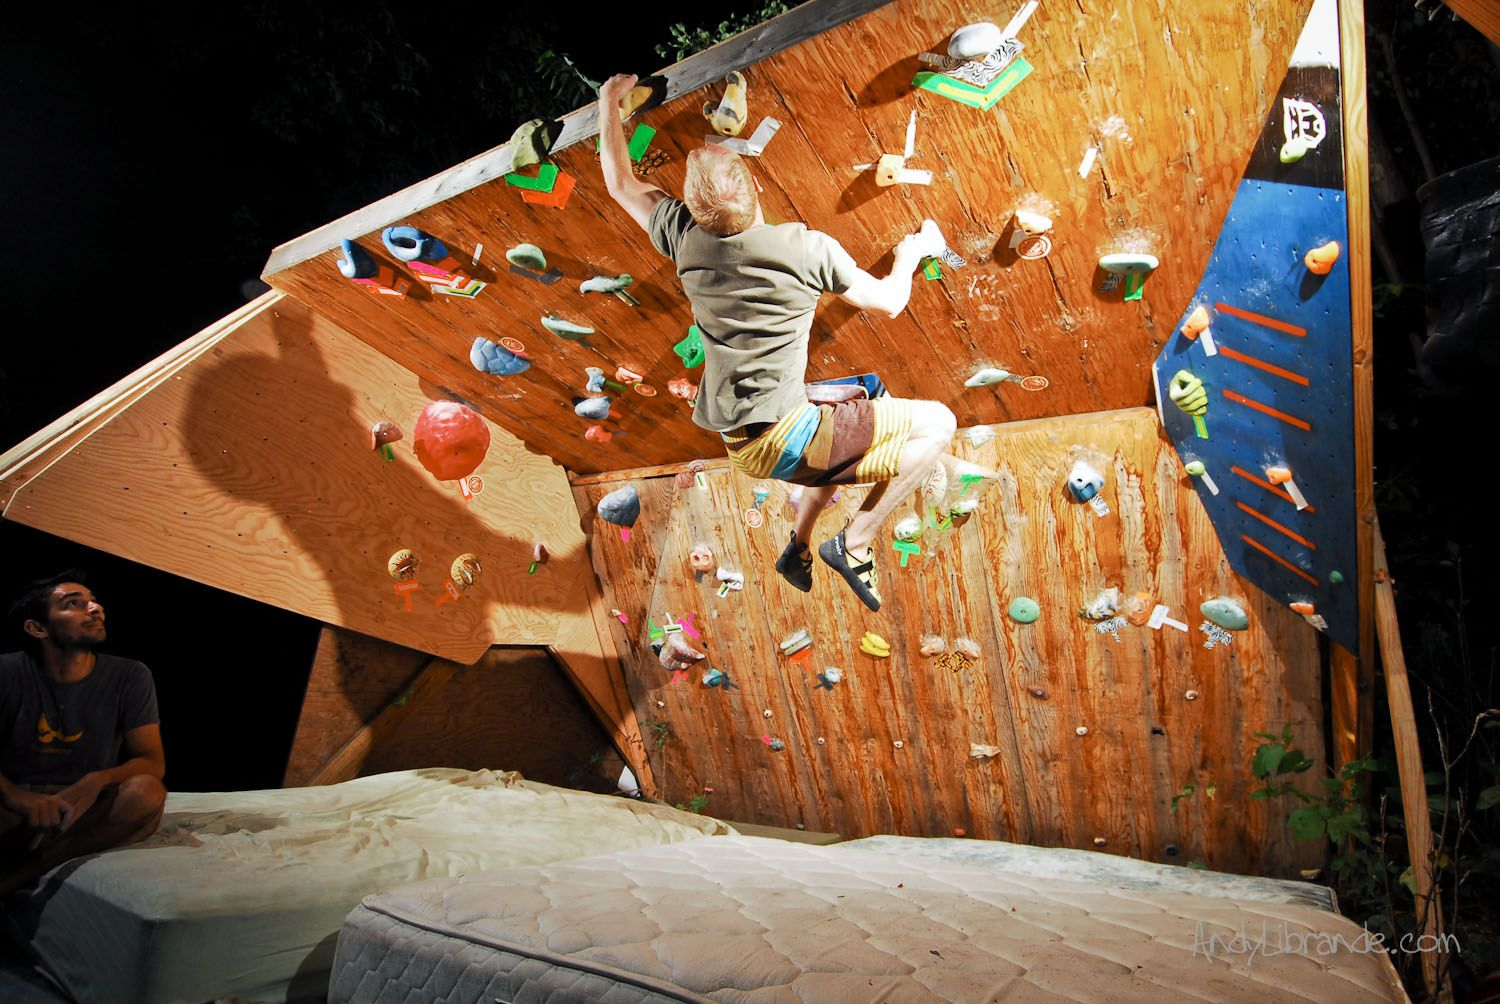 rock climbing photo crackboard range crack machine pinterest woody climbing and ranges